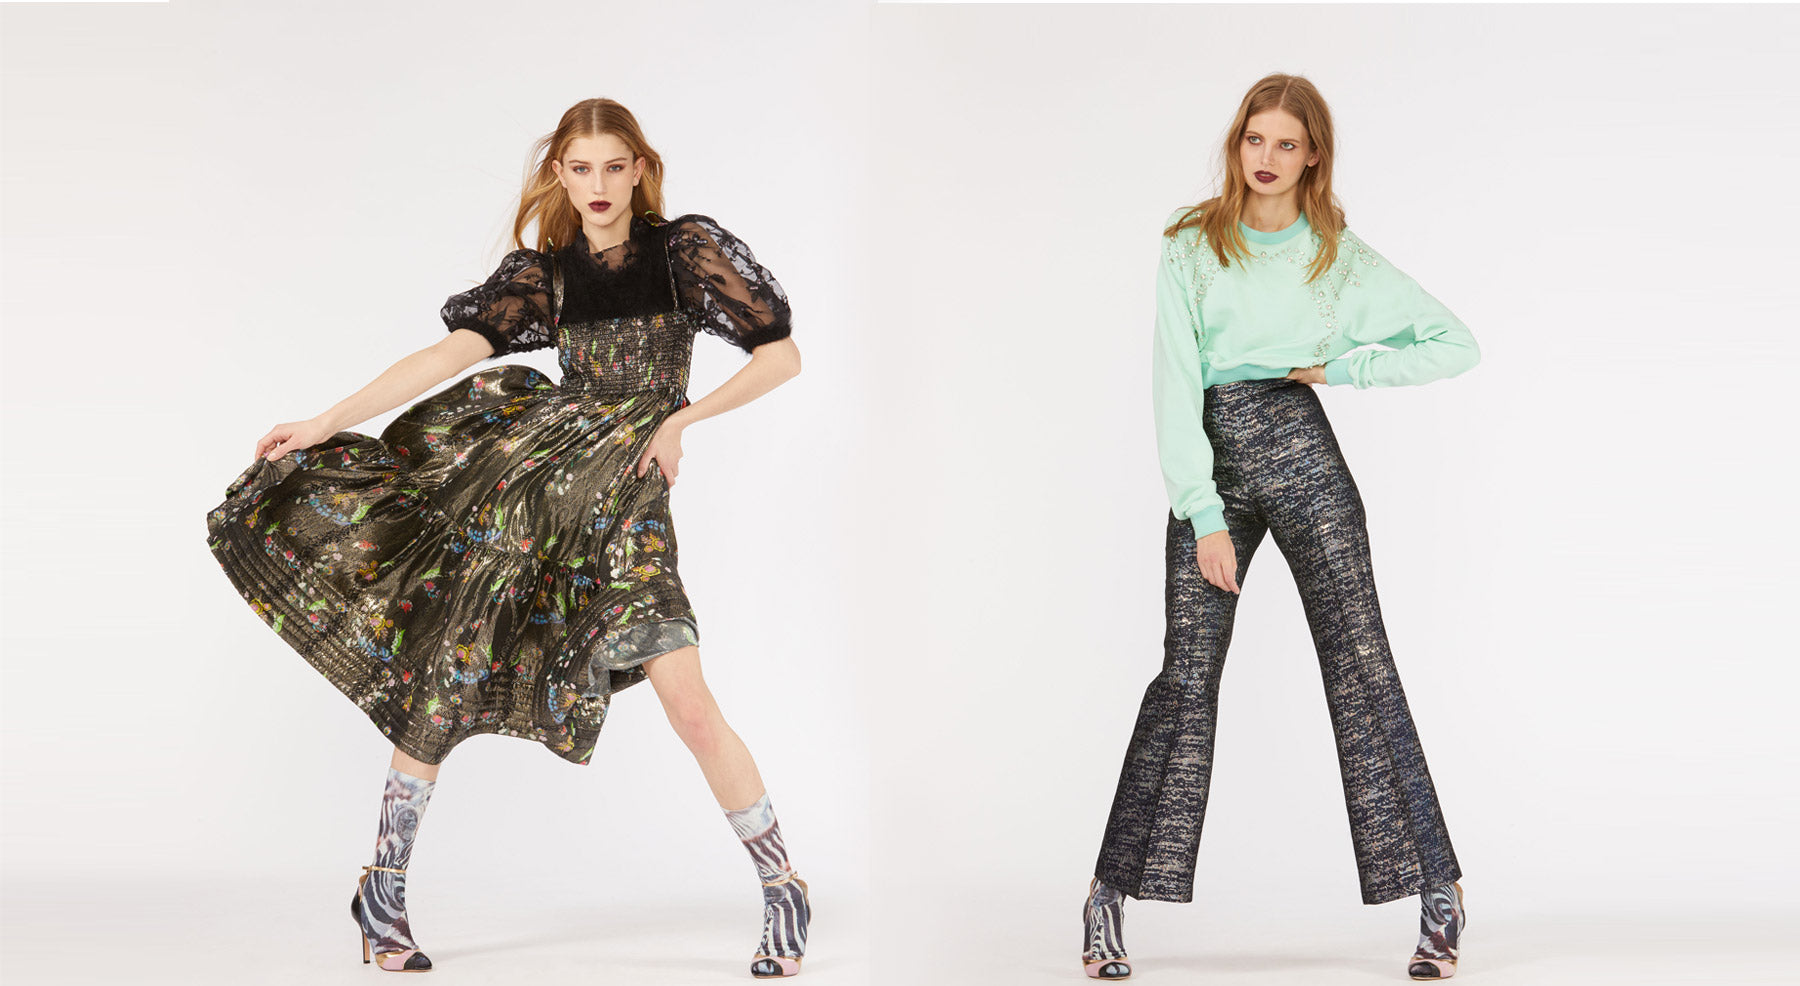 Models wearing the Parker Floral Metallic dress and the Stella Metallic Brocade Flare pants.